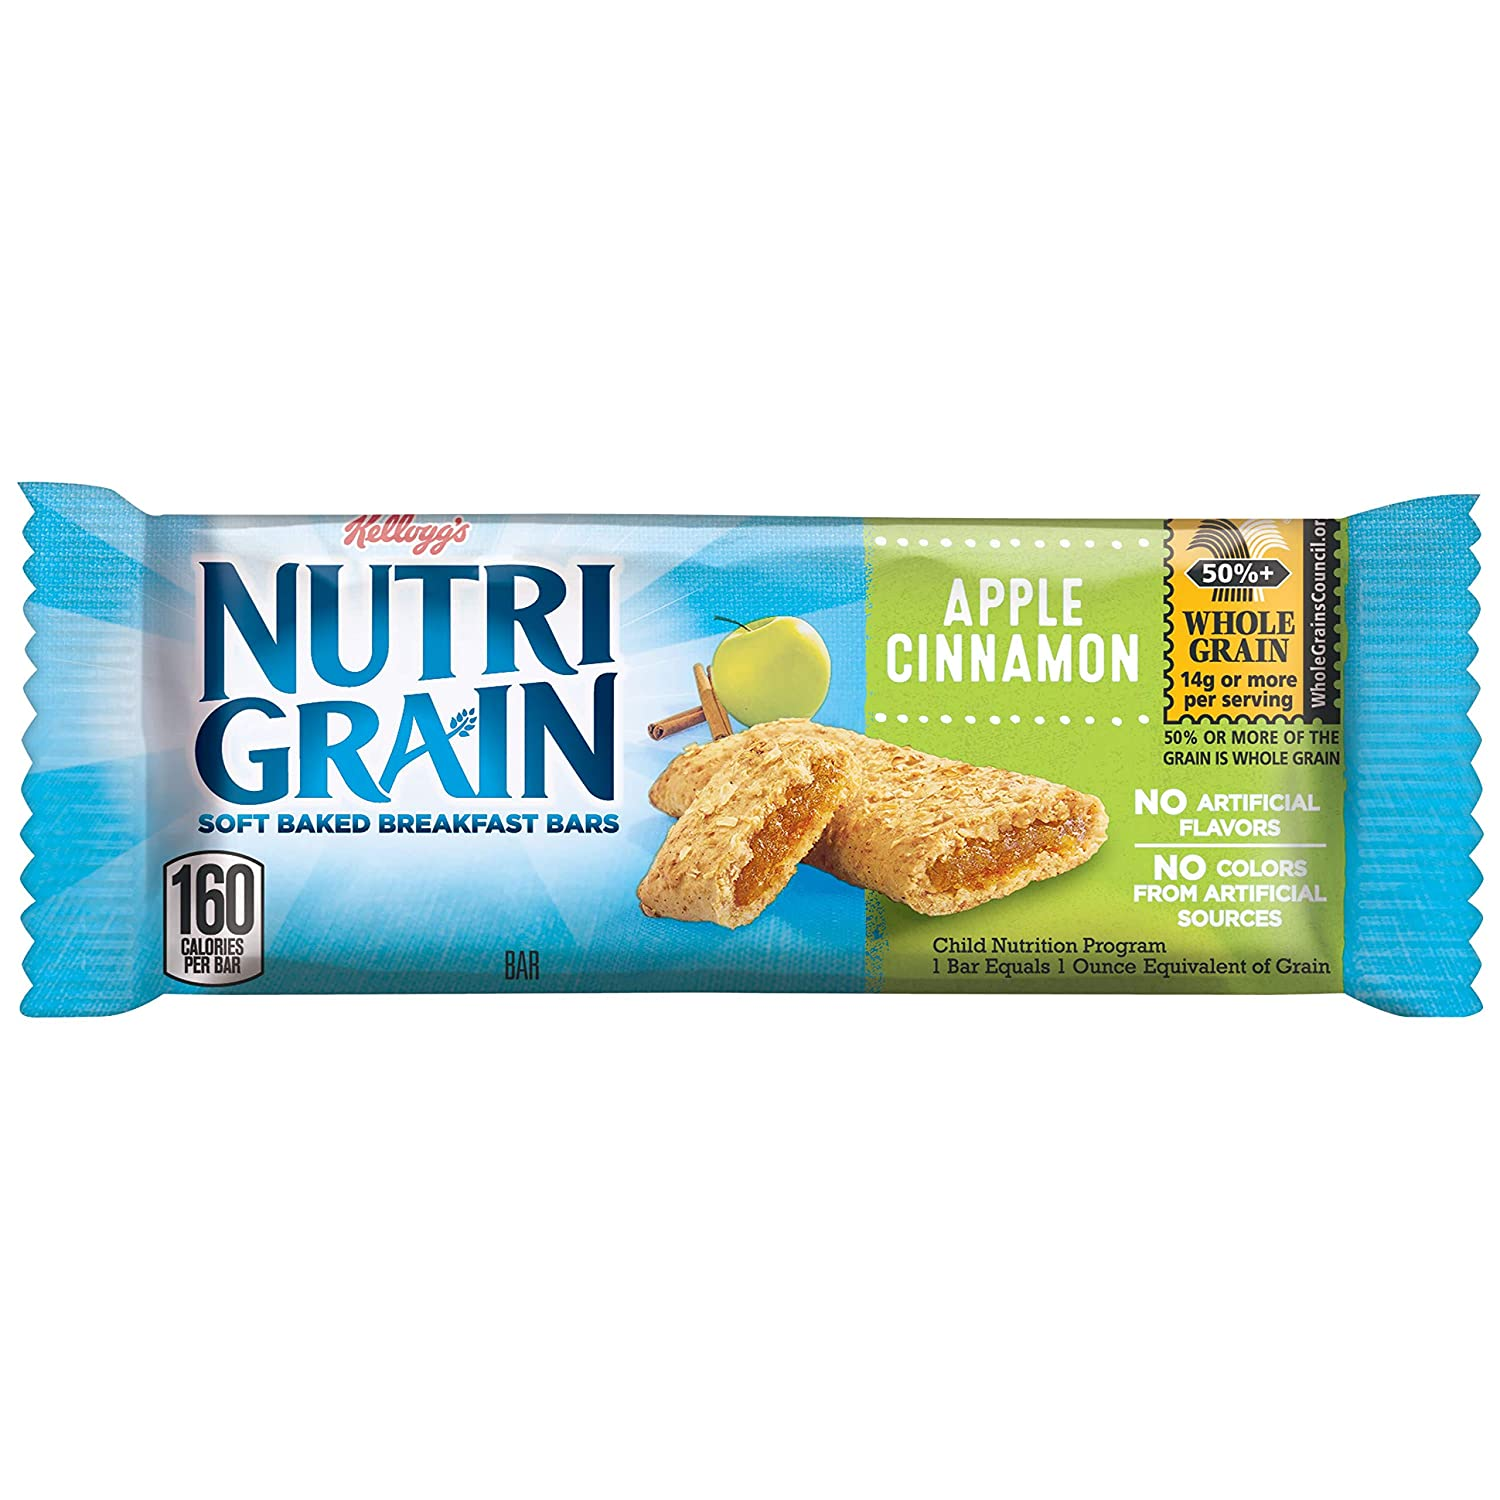 Kellogg's Nutri-Grain Cereal Bars made with 14g Whole Gain, Apple Cinnamon, 24.8oz (Pack of 6, 96 bars)